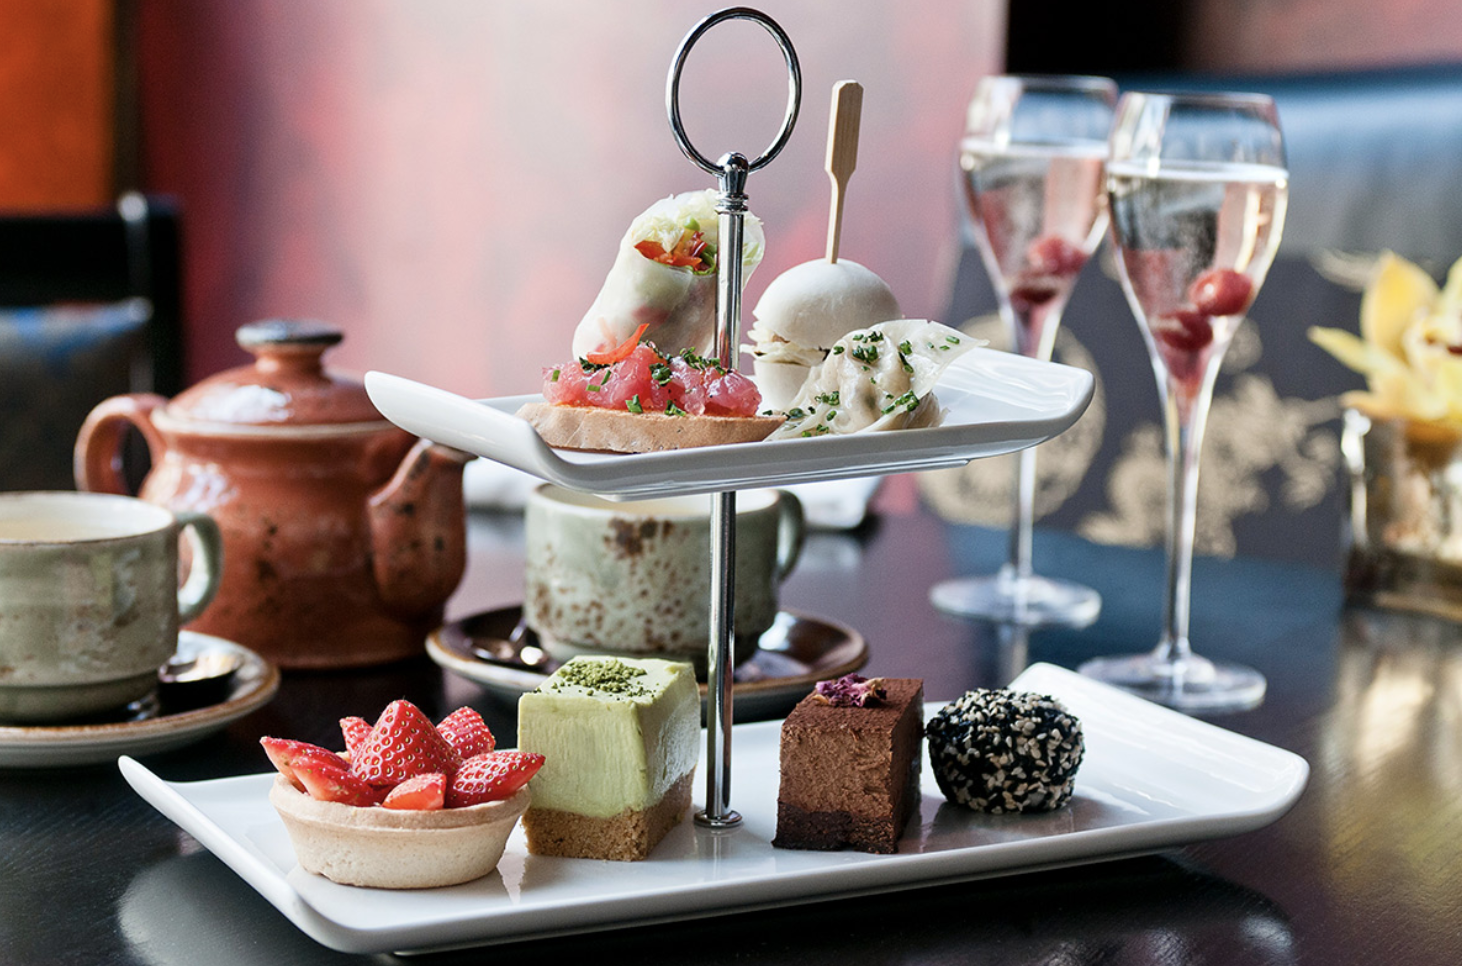 Afternoon Tea Week! Get ready to indulge in cakes, scones, chocolate and tea!